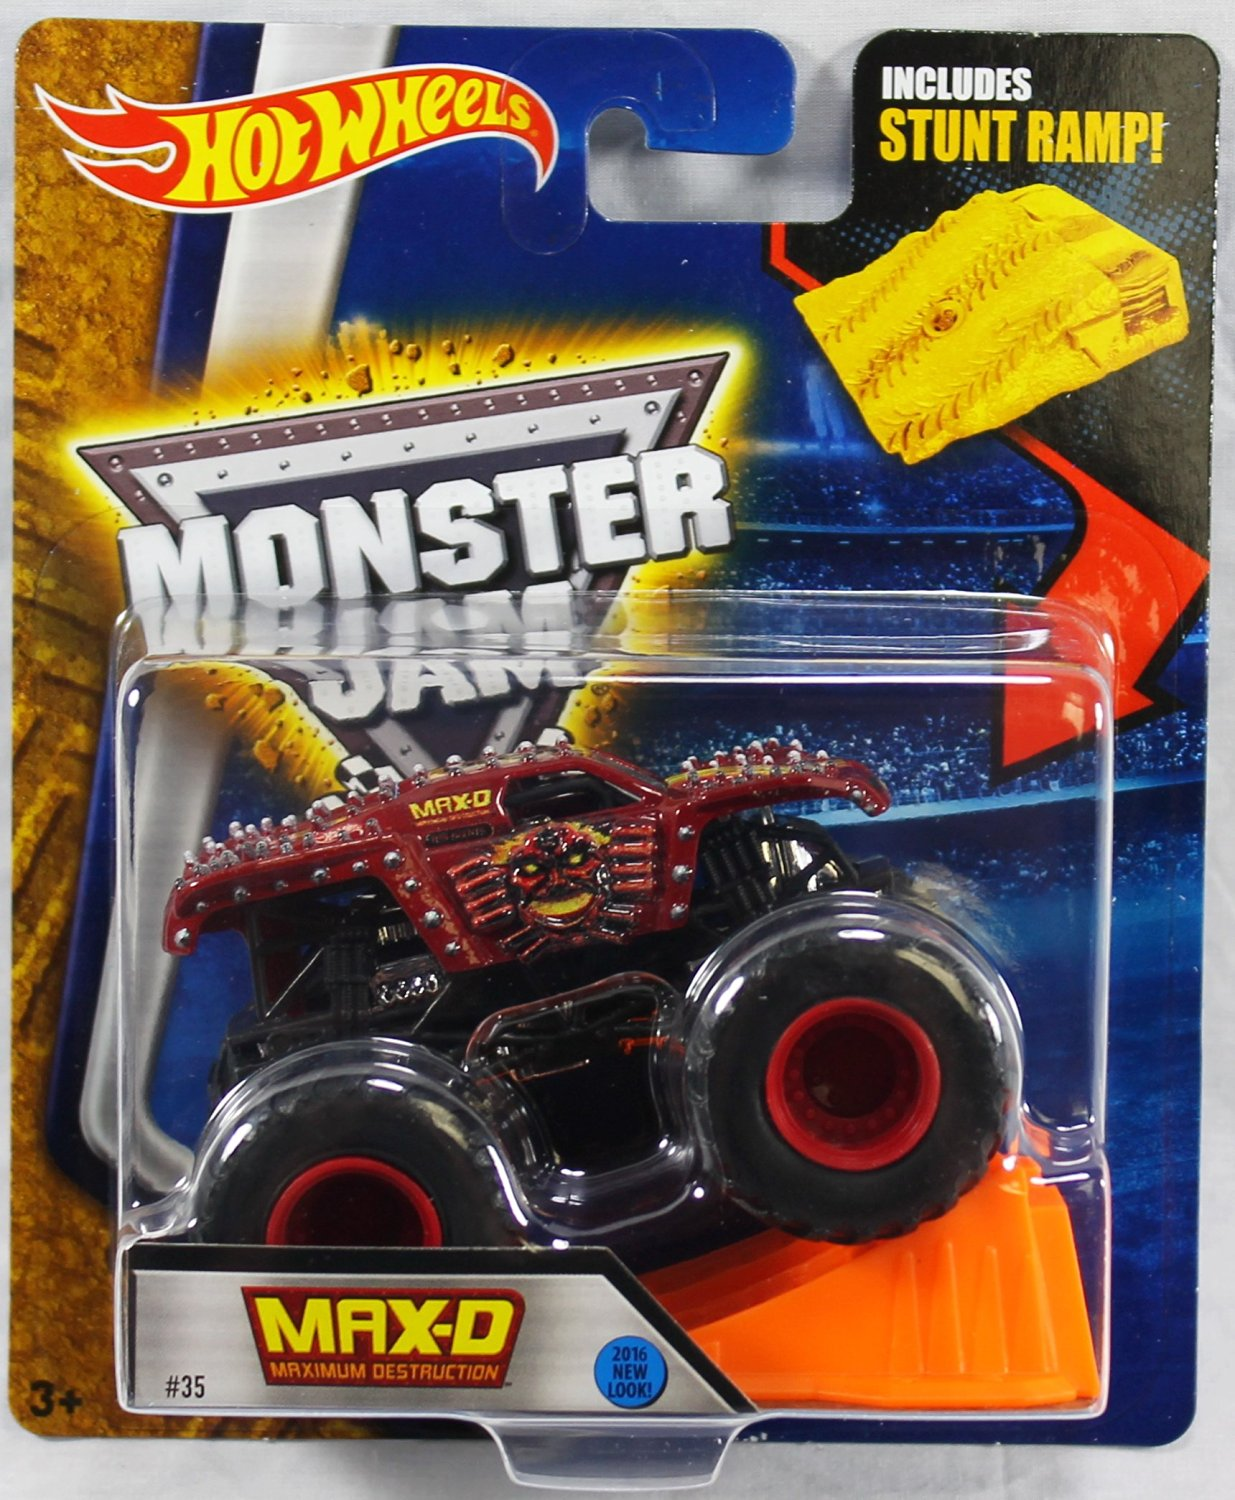 Hot Wheels Monster Jam Max D Maximum Destruction Red 2016 New Look! Includes Stunt Ramp! #35